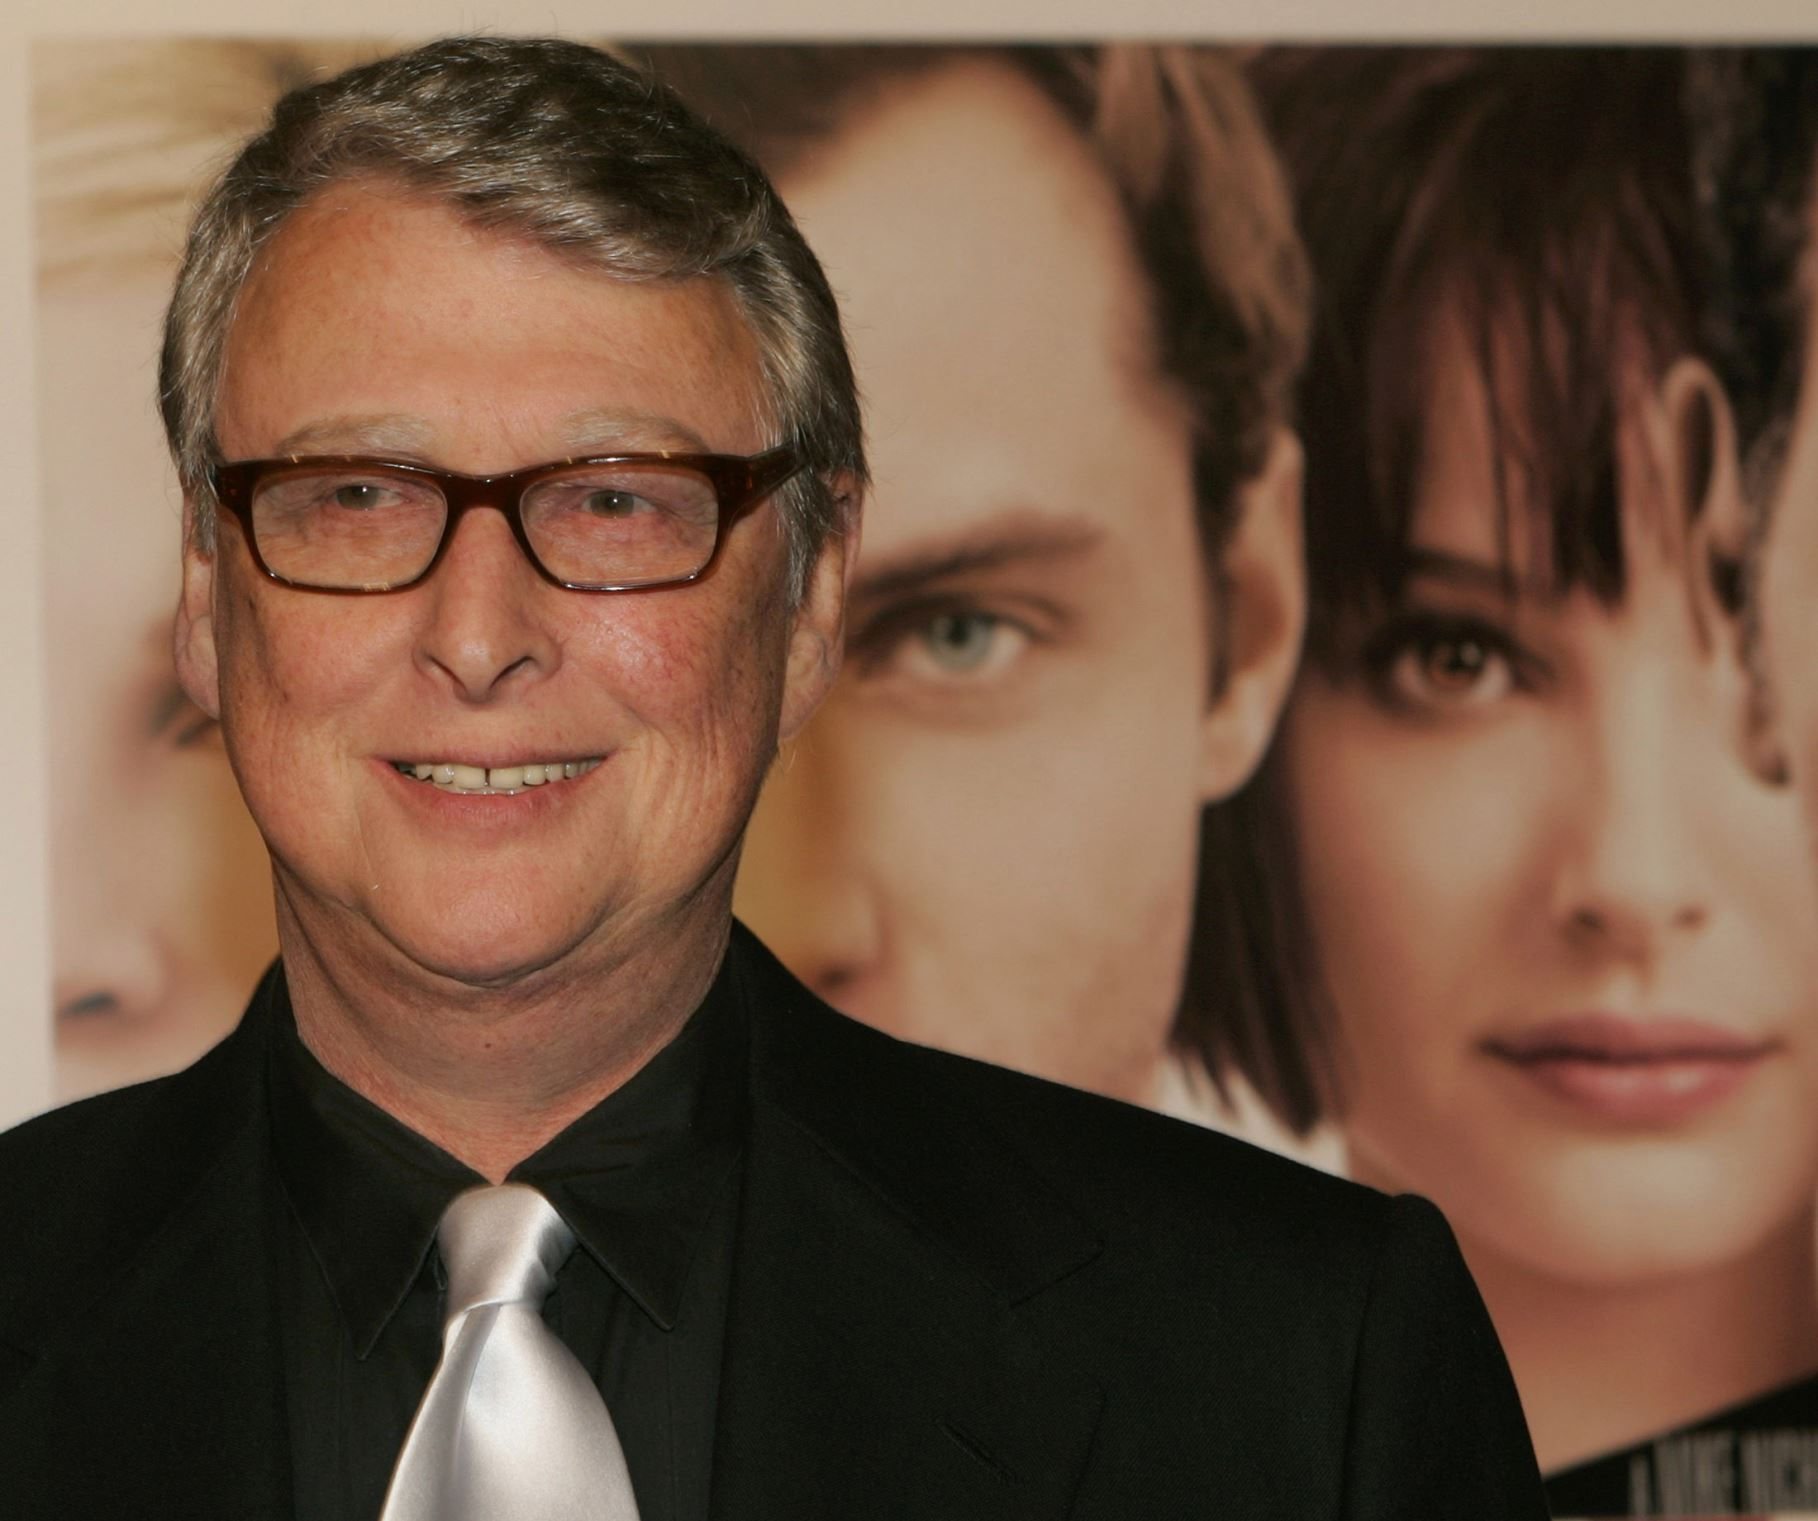 Award winning American director, The Graduate famed died of heart attack at the age of 63.